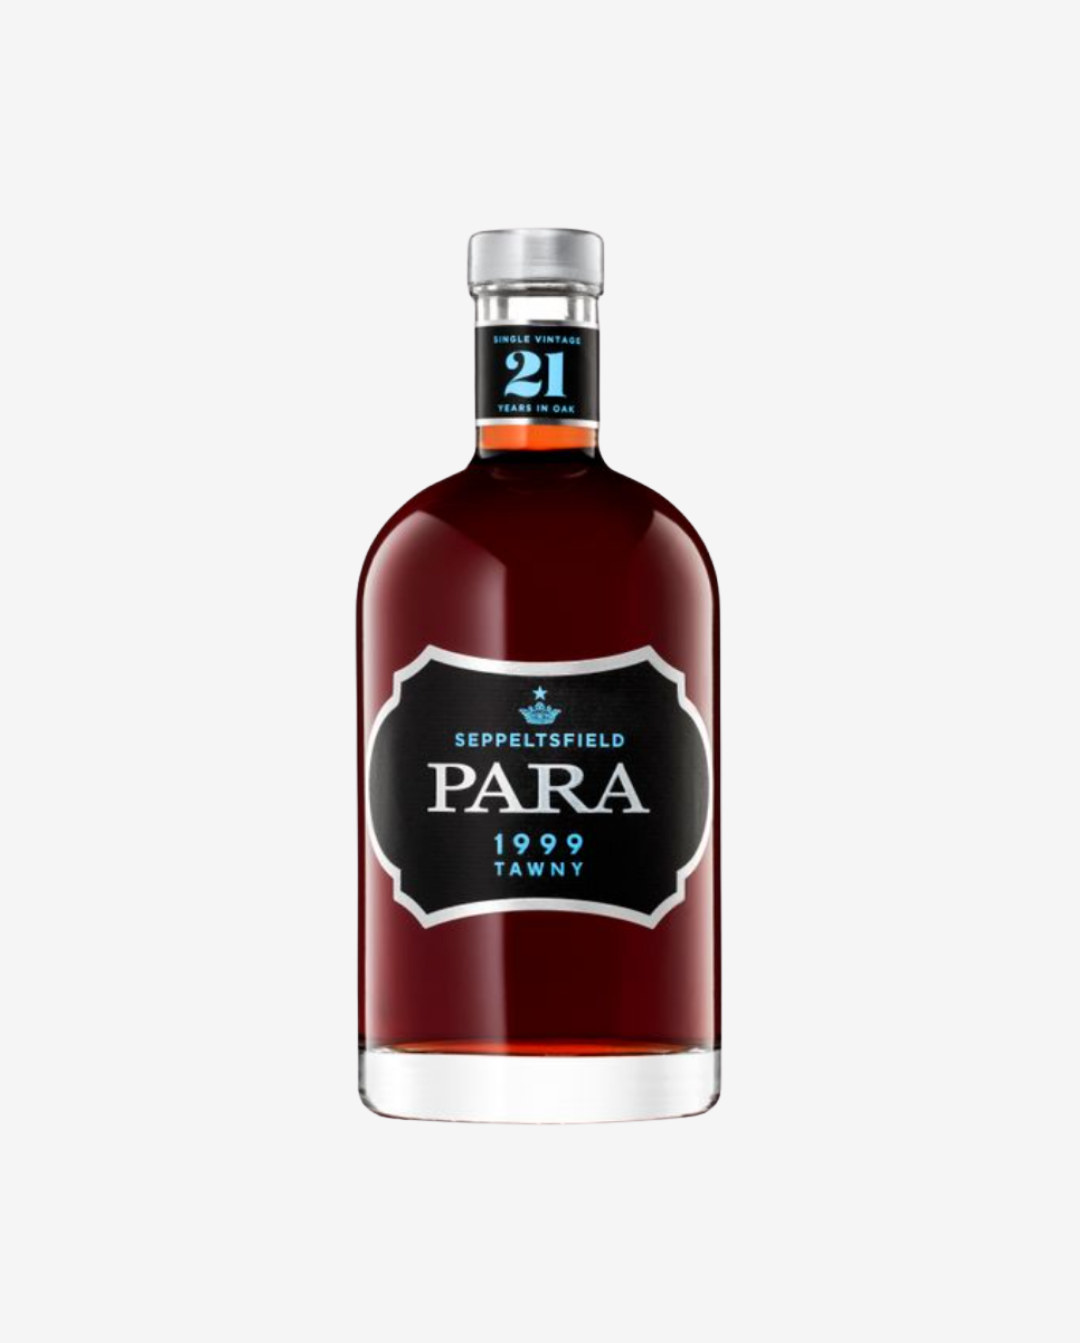 21 Year Old Para Tawny, Seppeltsfield 1998